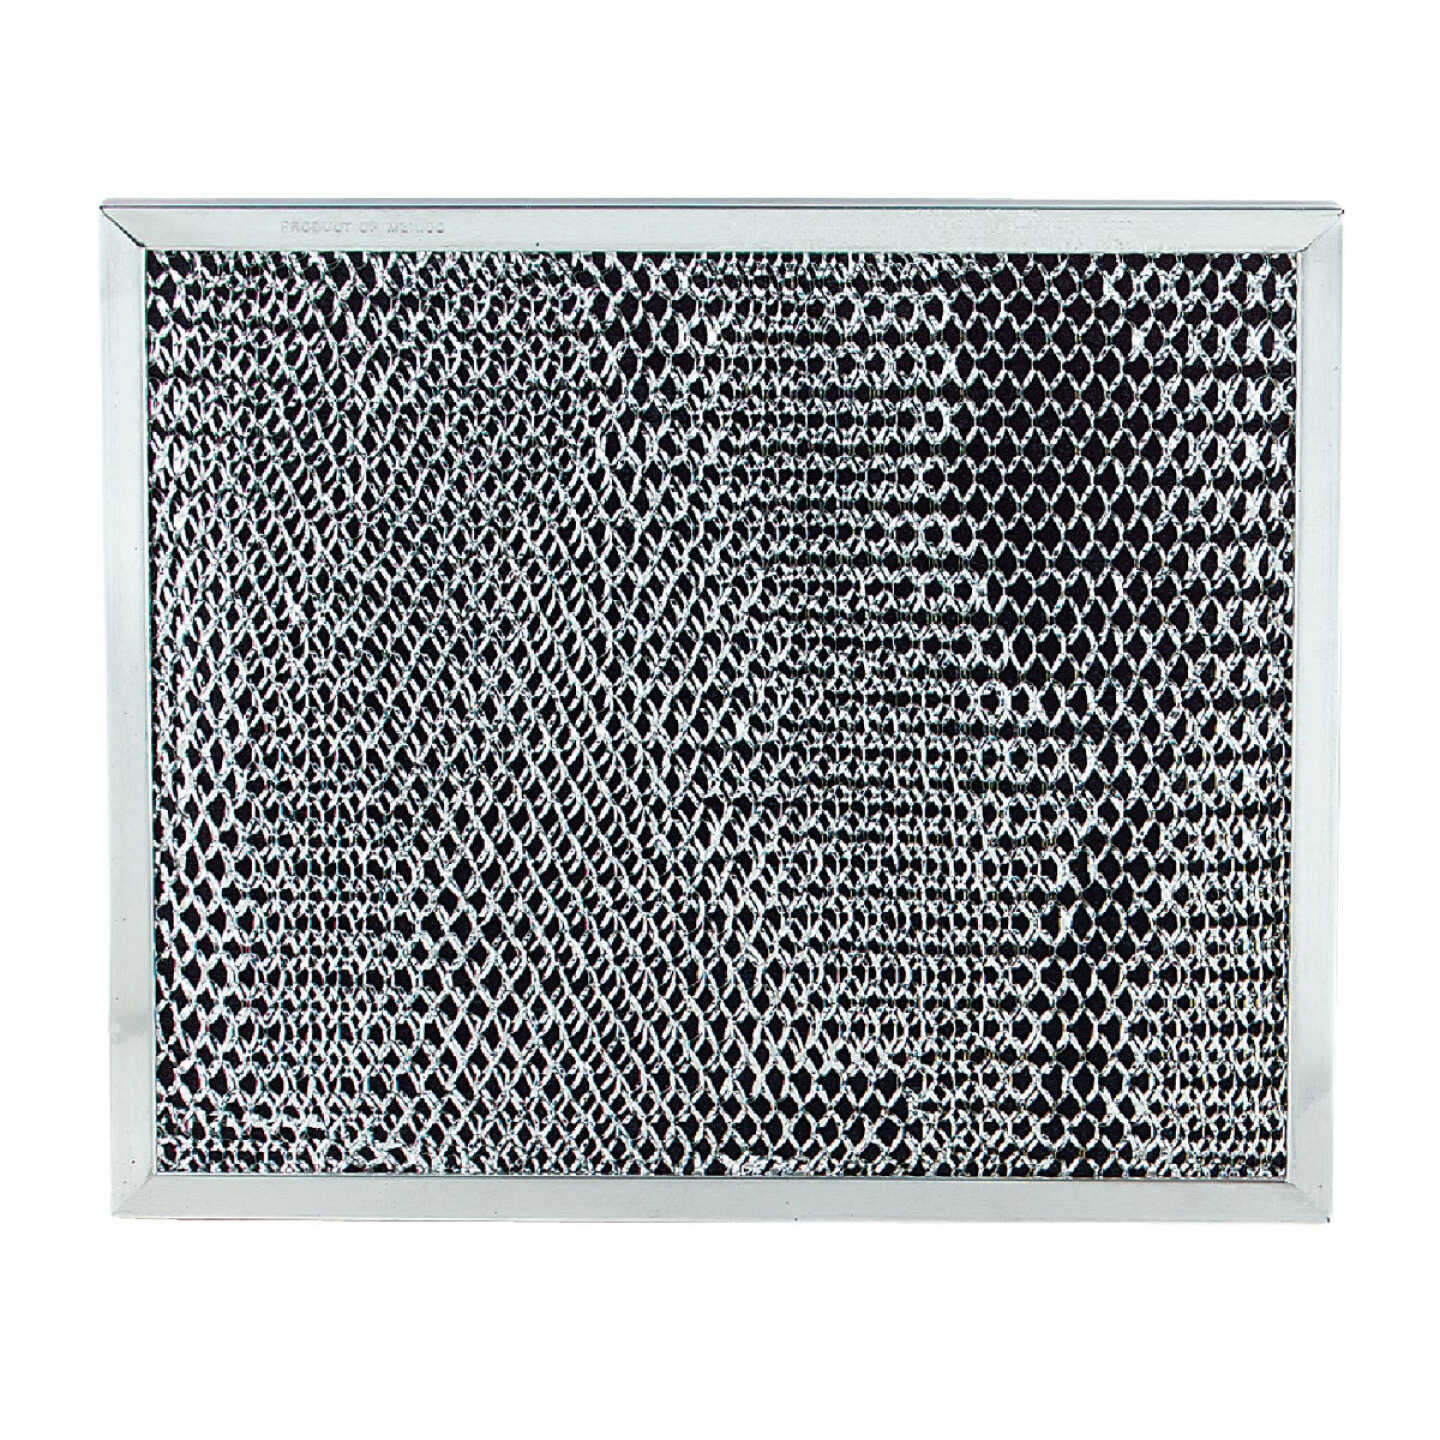 Broan-Nutone Microtek 413 Series Non-Ducted Charcoal Range Hood Filter Image 1